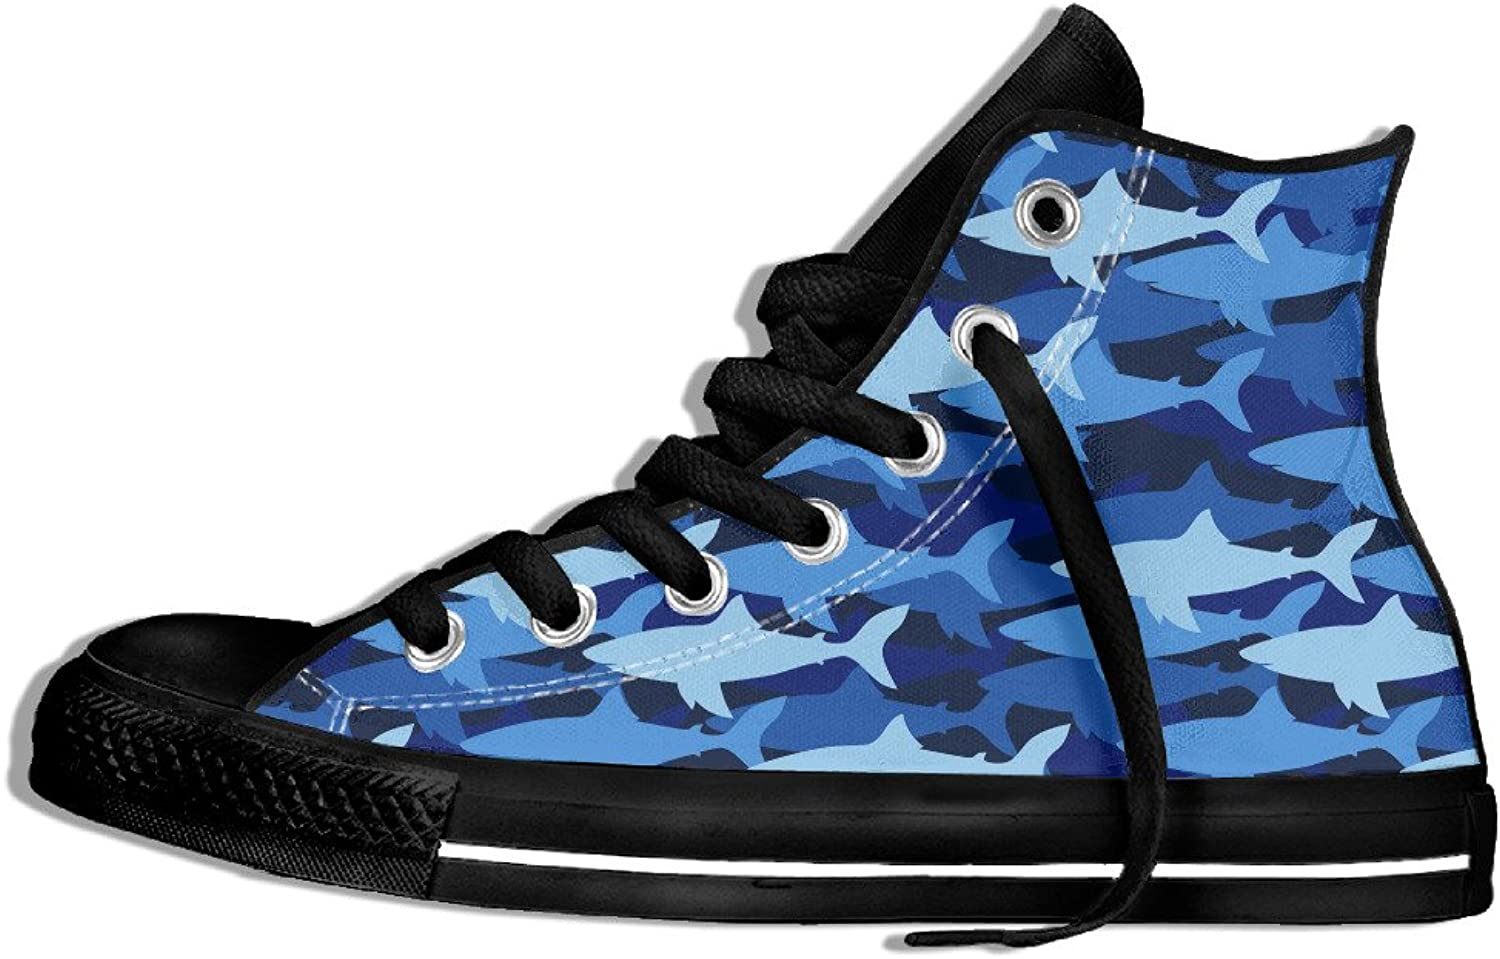 Efbj Cute Shark Print Unisex Unique High Top Sneakers shoes for Men and Women